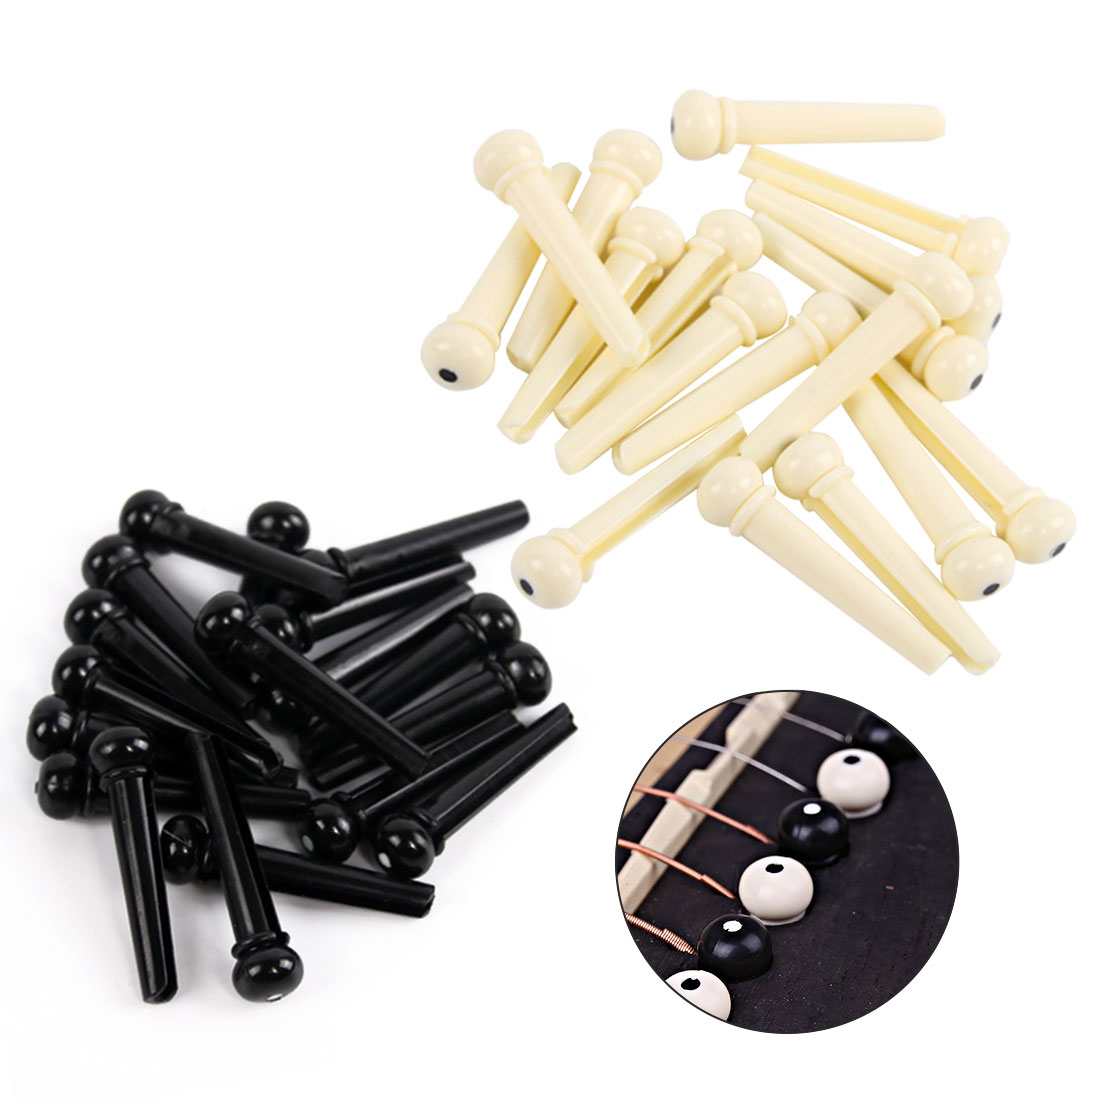 new 6pcs set classical style acoustic guitar bridge pin musical stringed instruments guitar. Black Bedroom Furniture Sets. Home Design Ideas